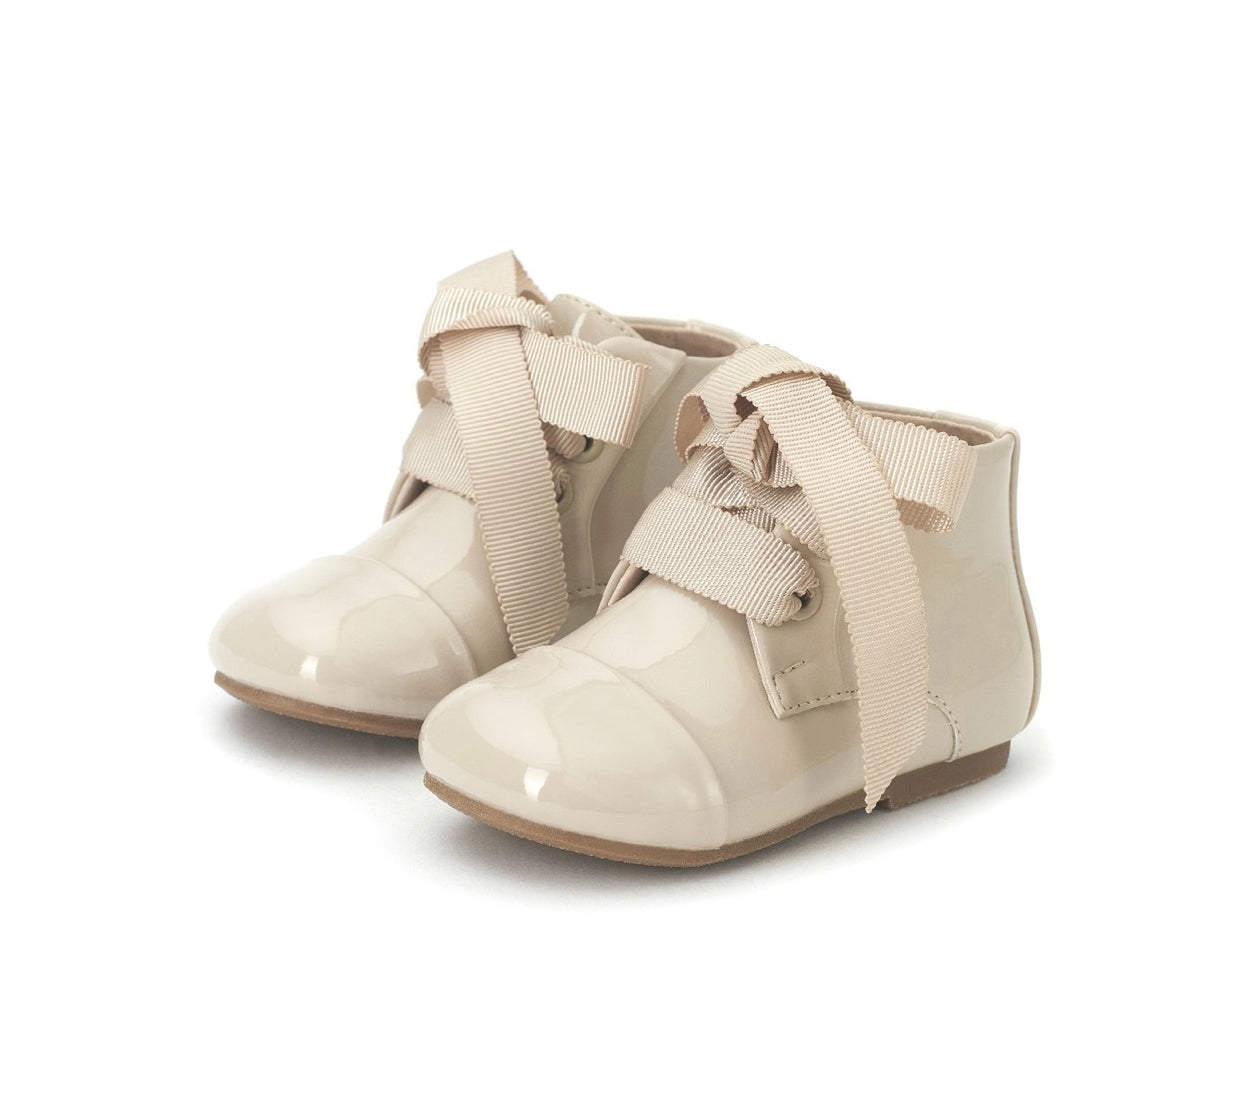 Age Of Innocence JANE Boots in Beige Patent  Learher.